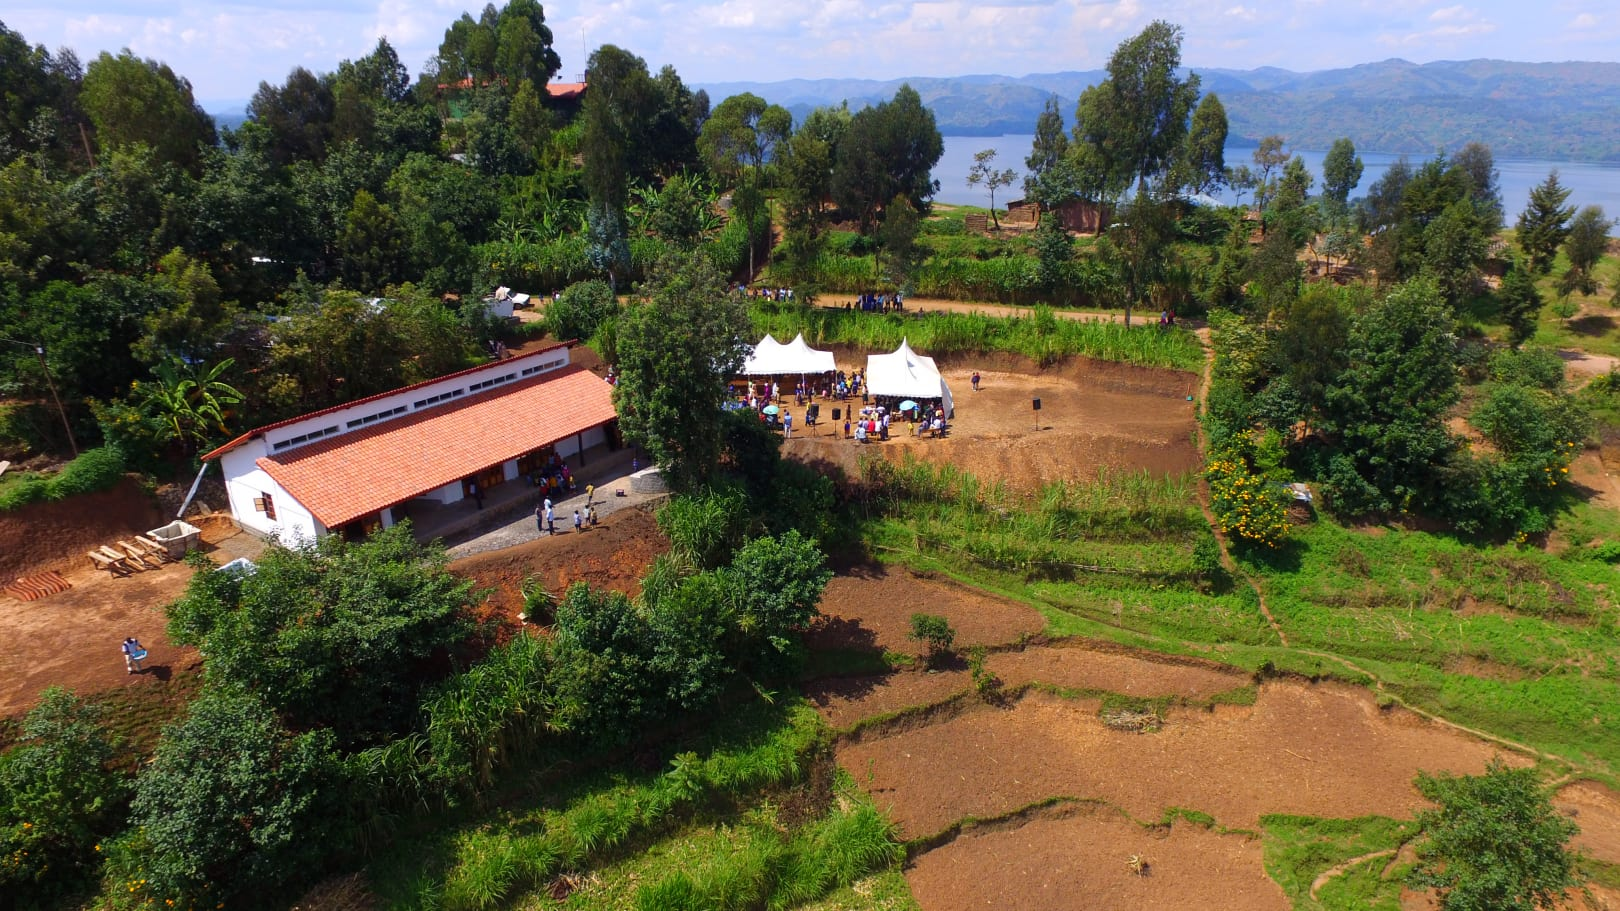 A birds' eye view of the Sunzu Pacu Community Center